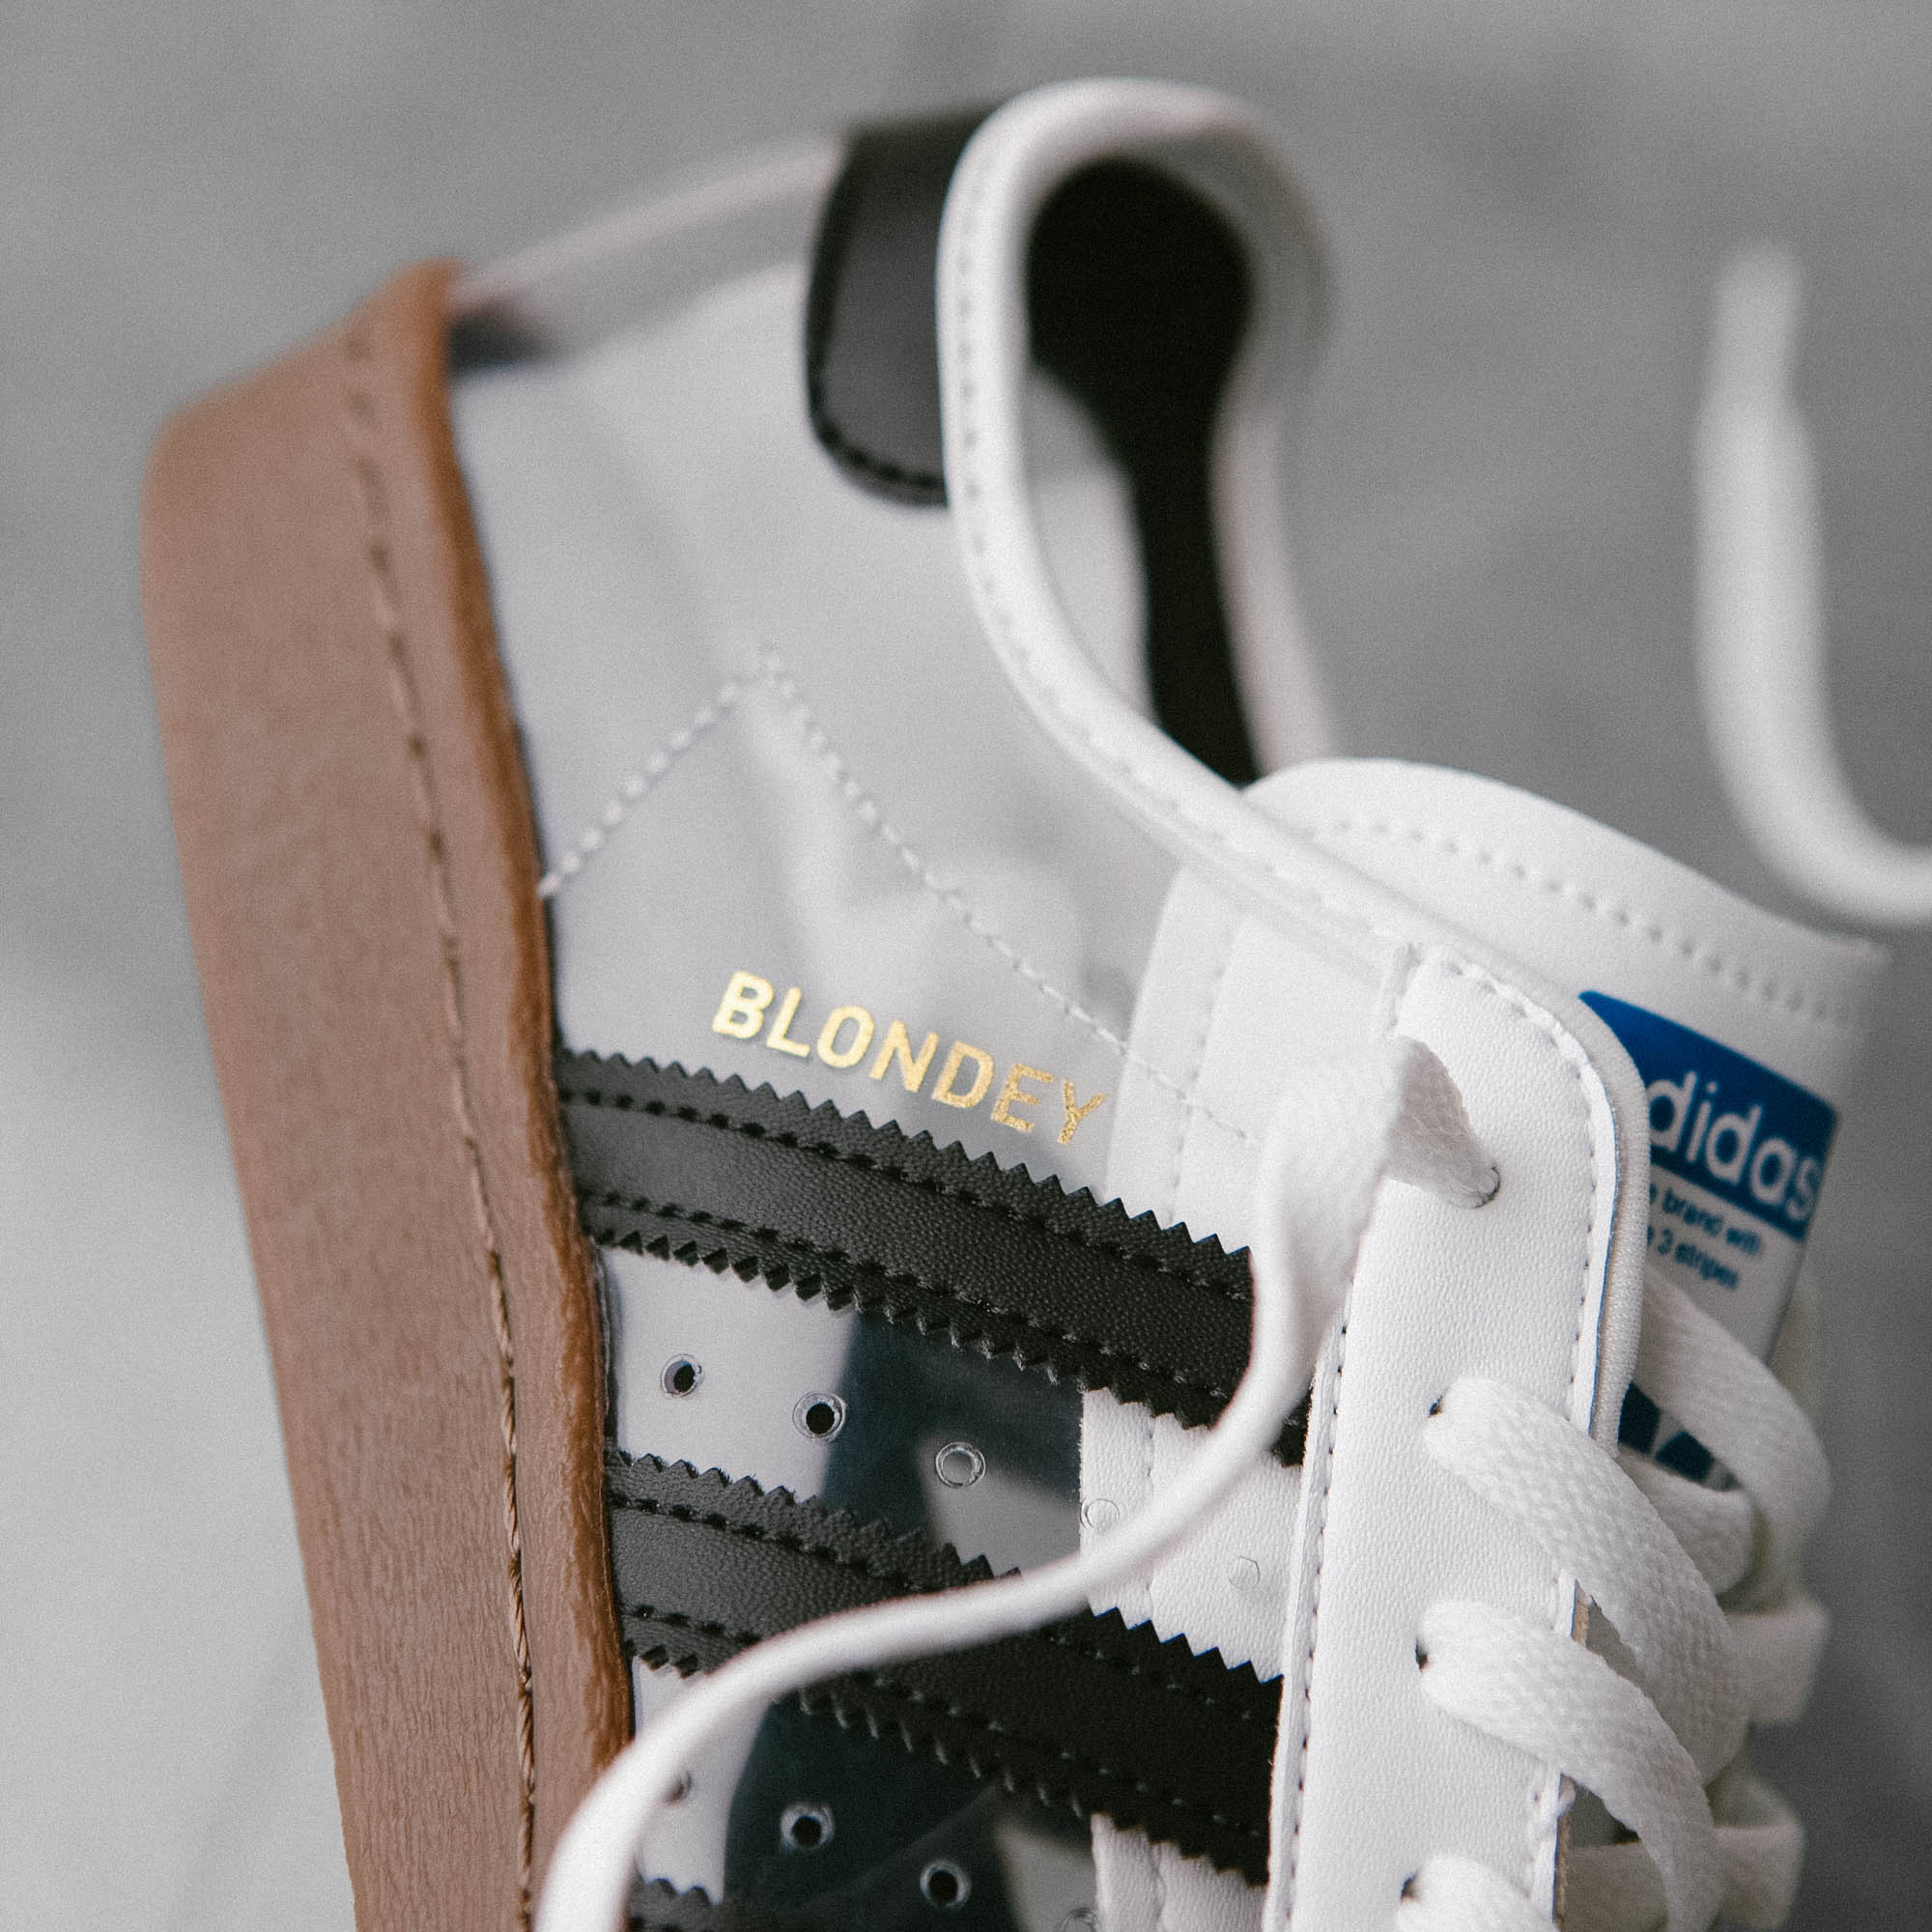 Adidas Rider Series: Blondey McCoy Superstar 80's | Flatspot